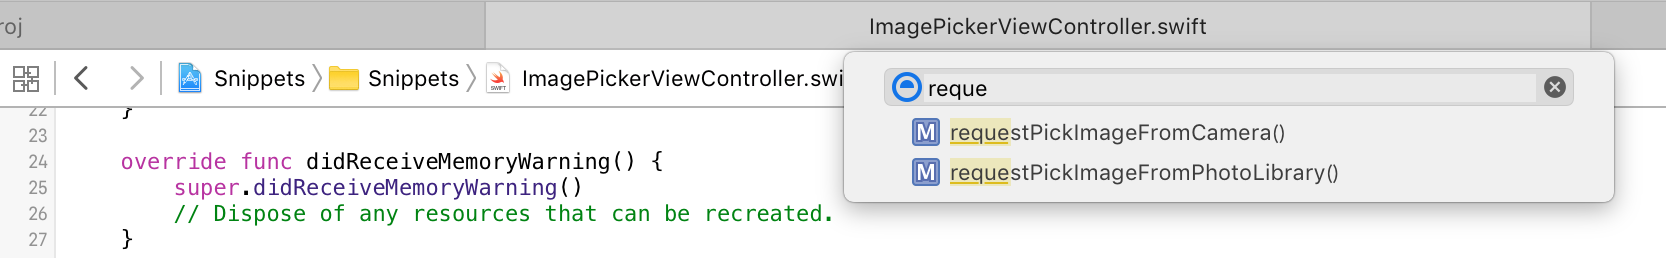 xcode_20160701_2.png